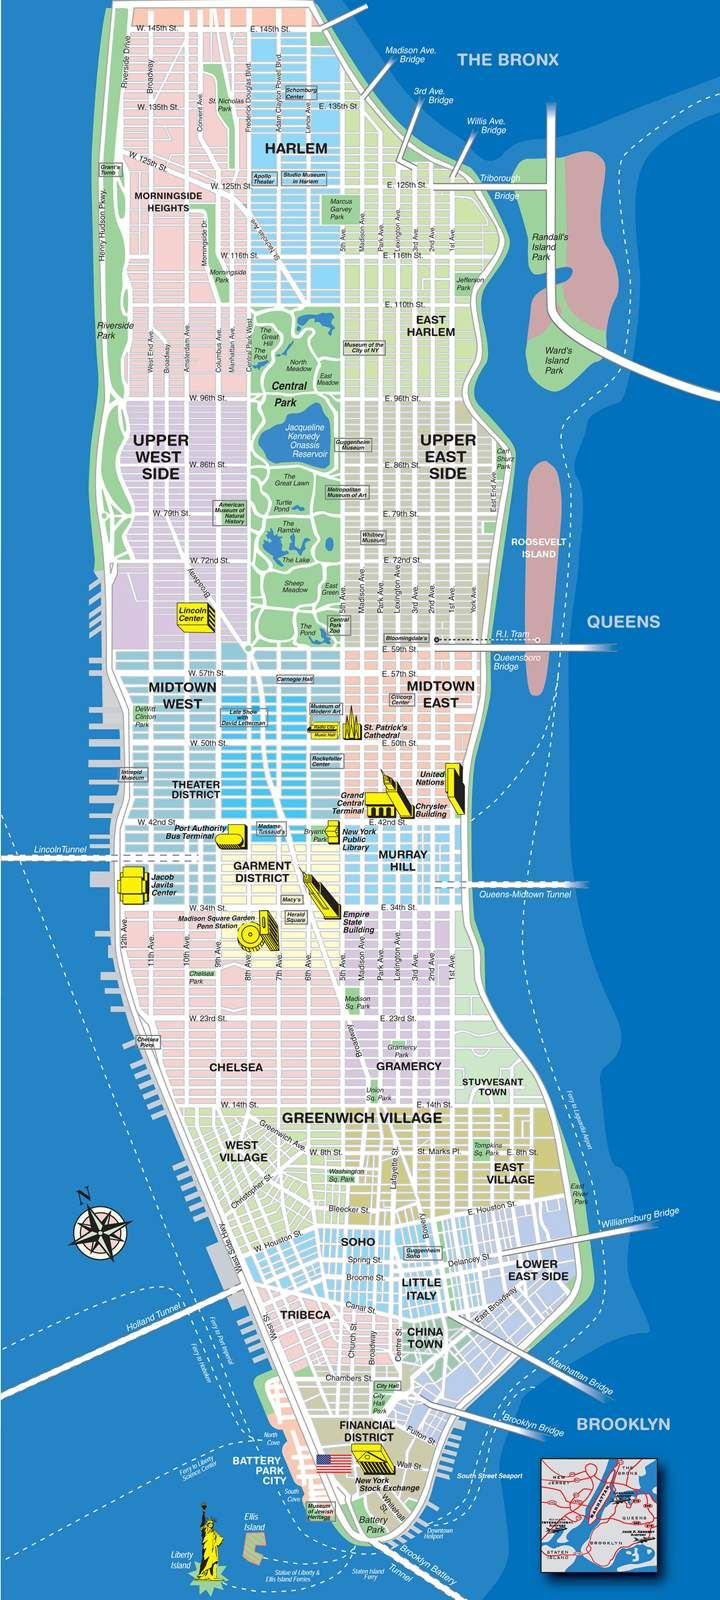 Detailed Map Of New York City.High Resolution Map Of Manhattan For Print Or Download Usa Travel